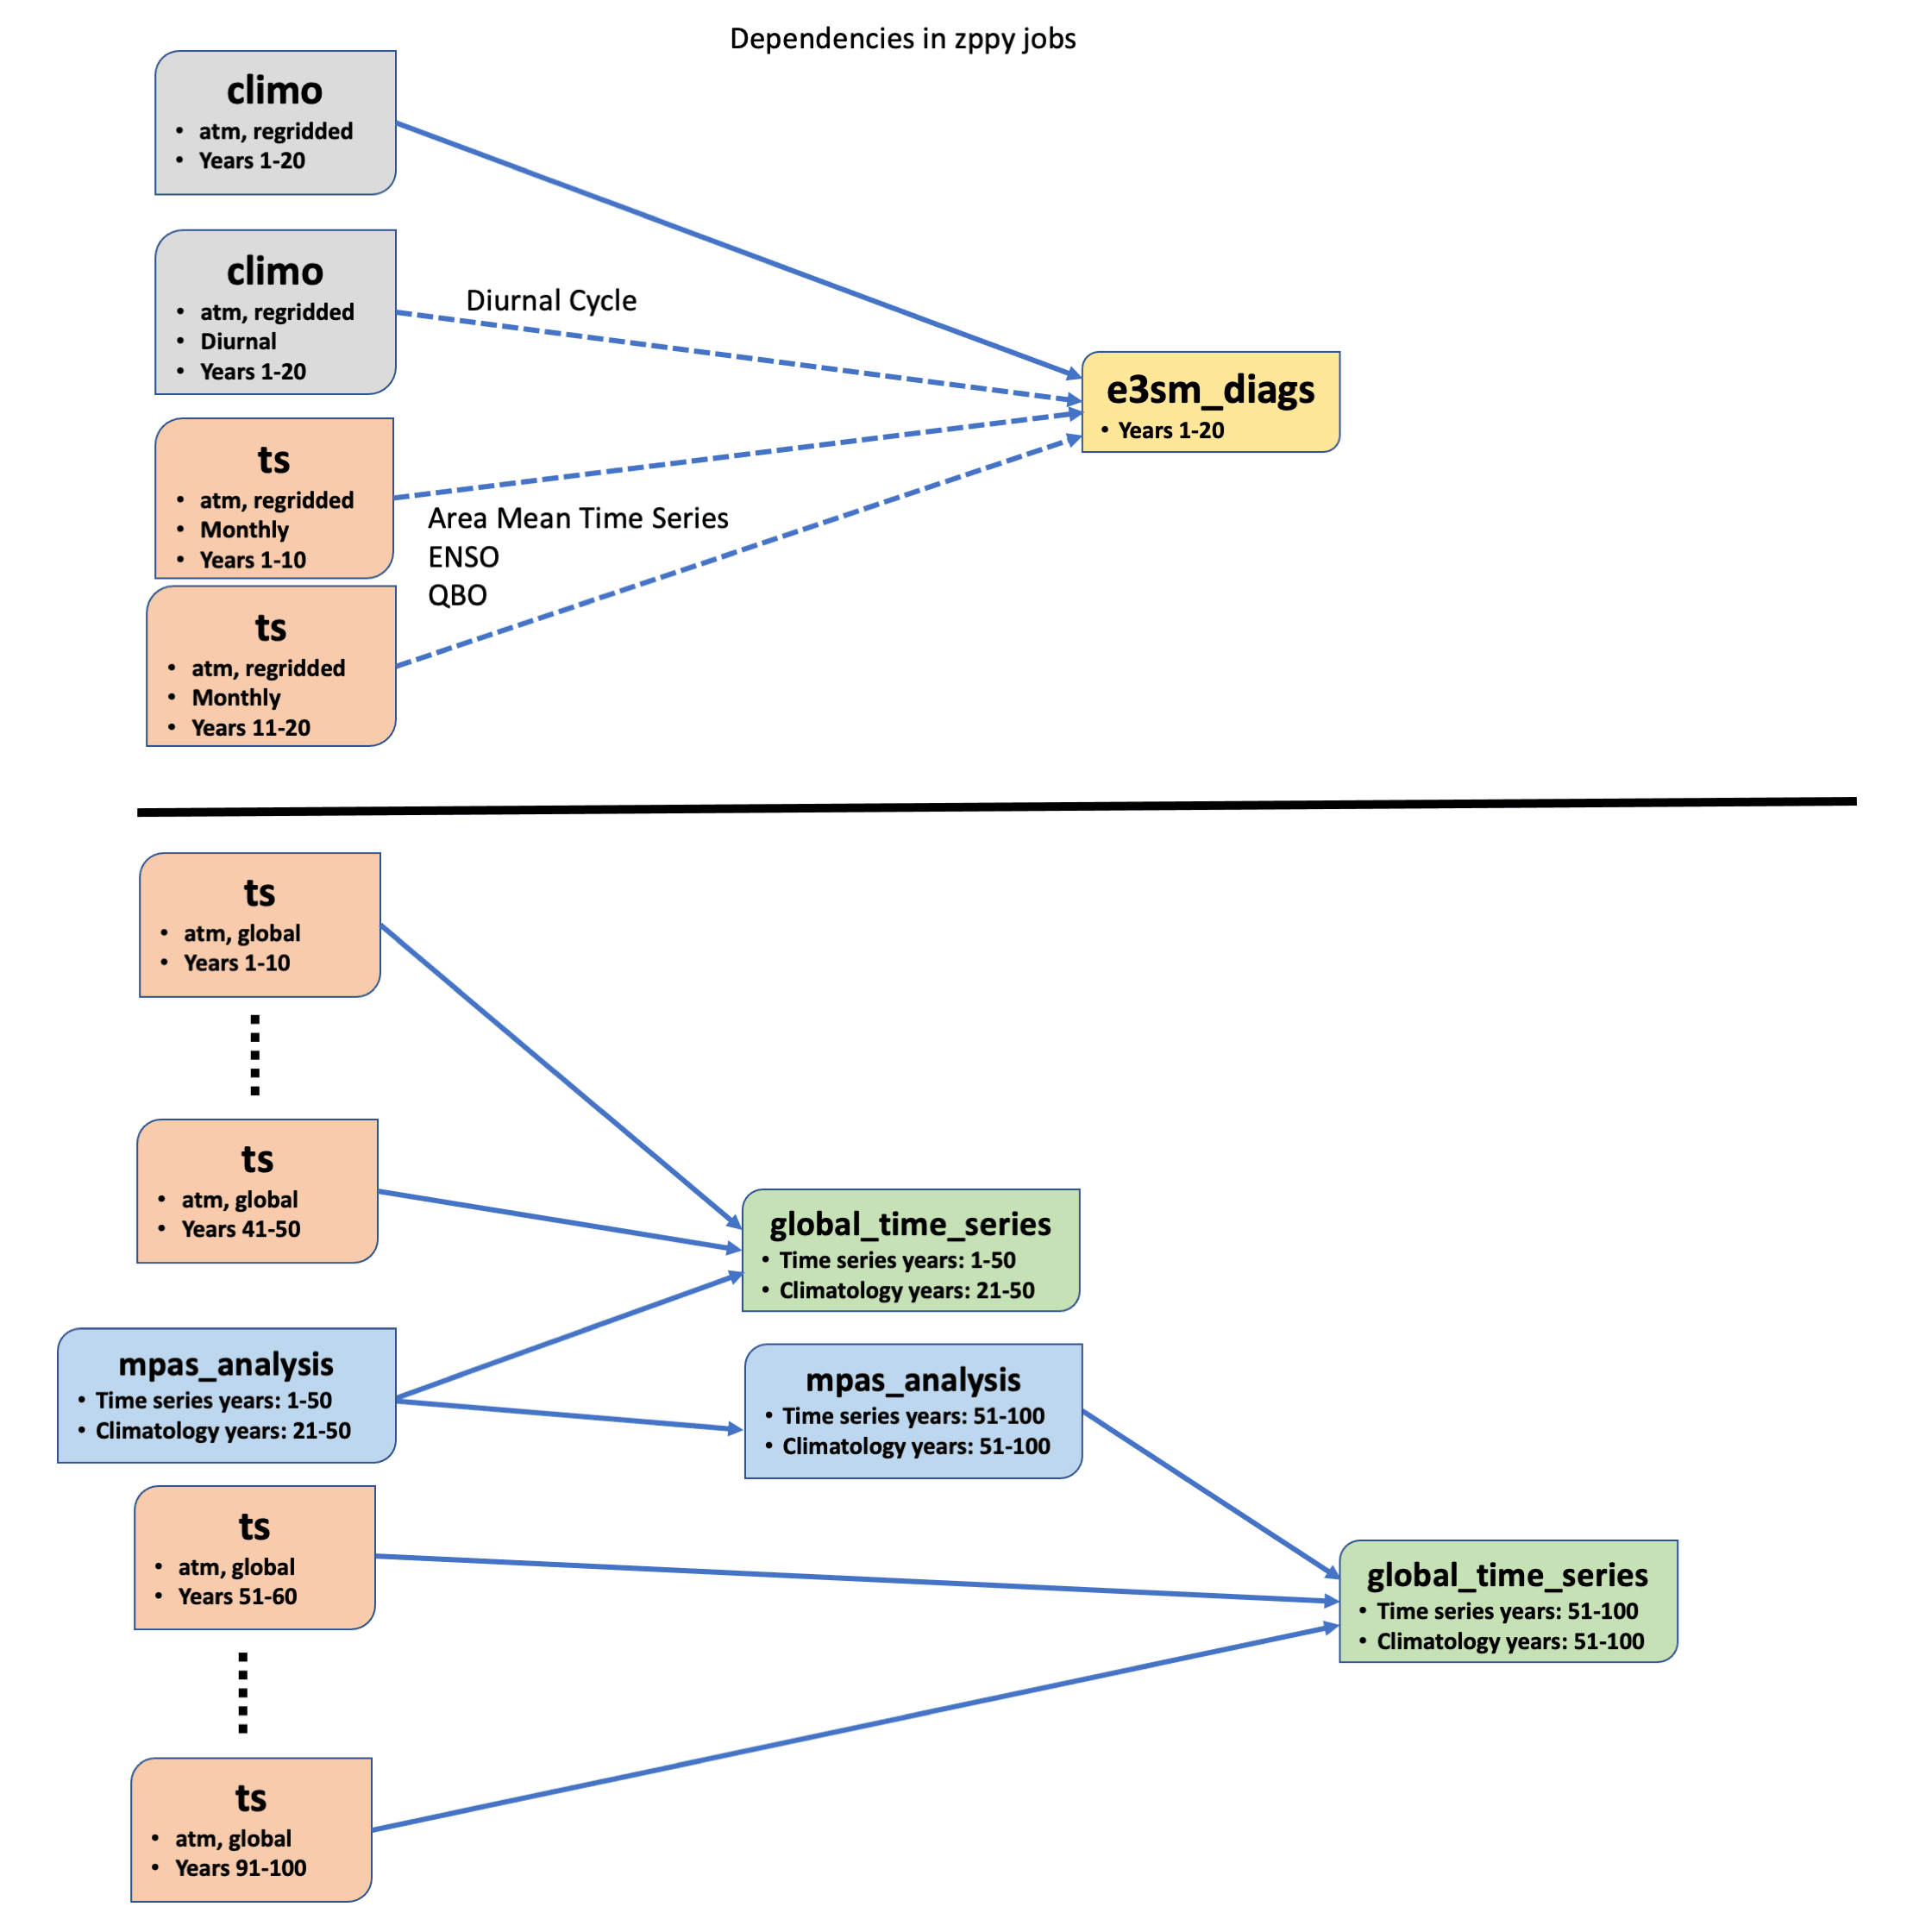 Two possible job dependency graphs.